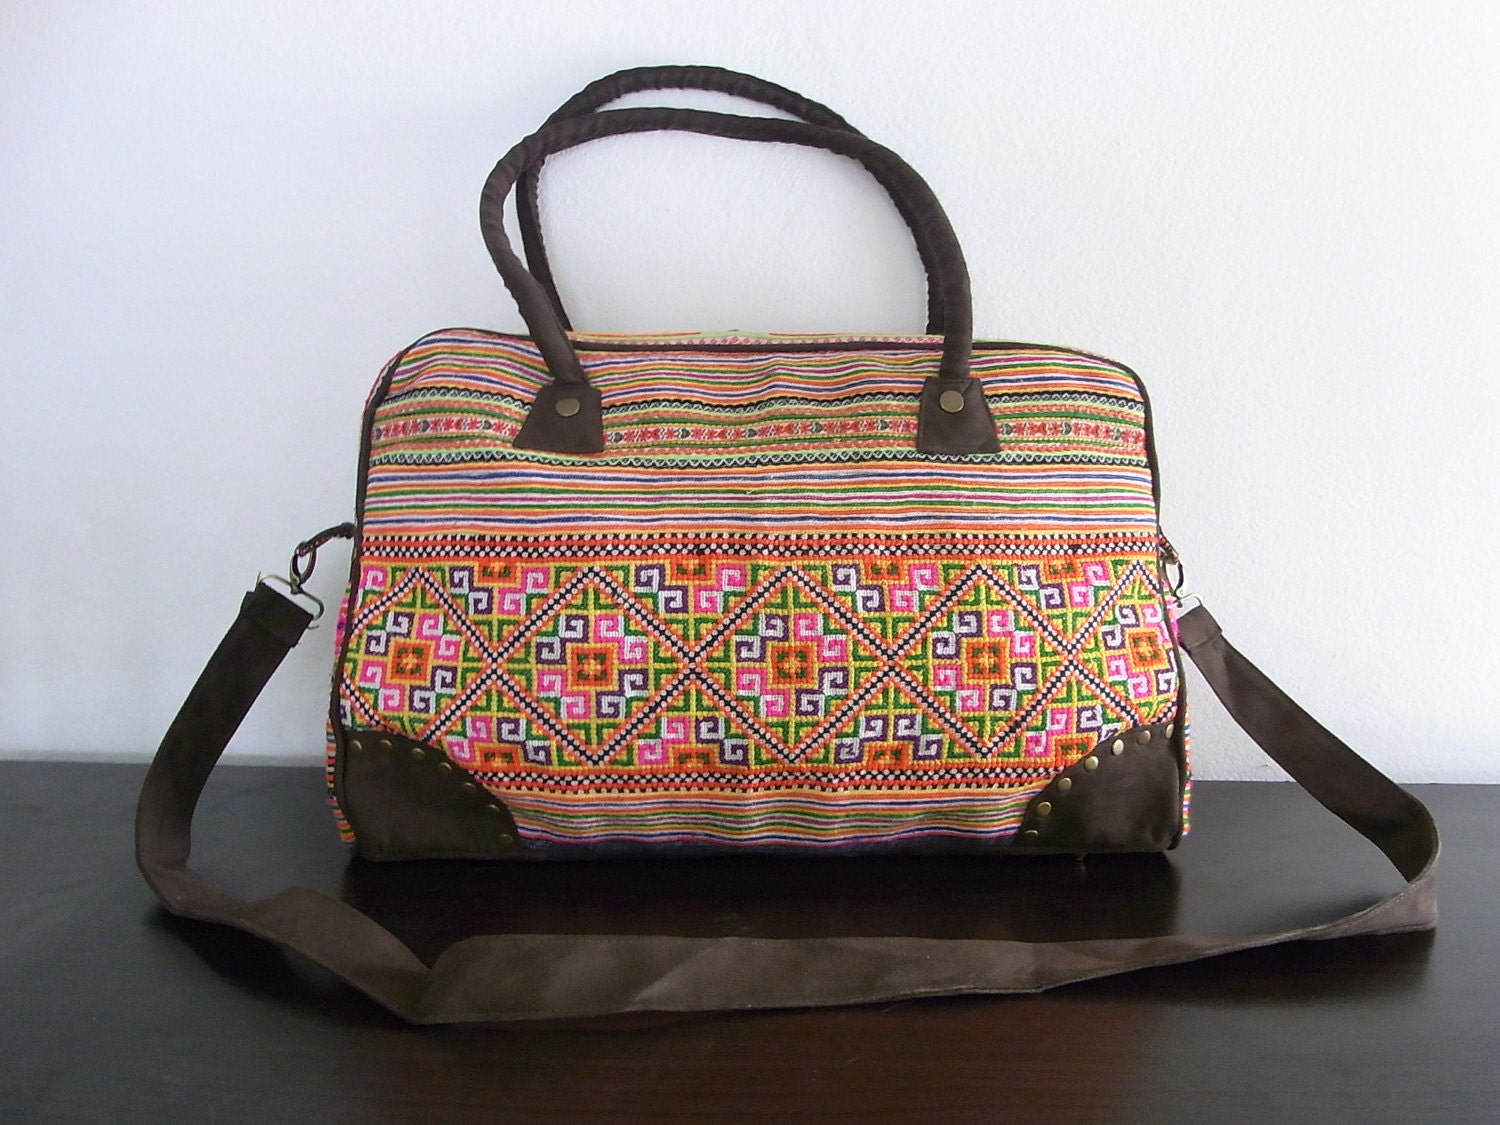 COMPUTER BAG  - Vintage HMONG Bag - Leather Strap - Fair Trade Thailand (506)